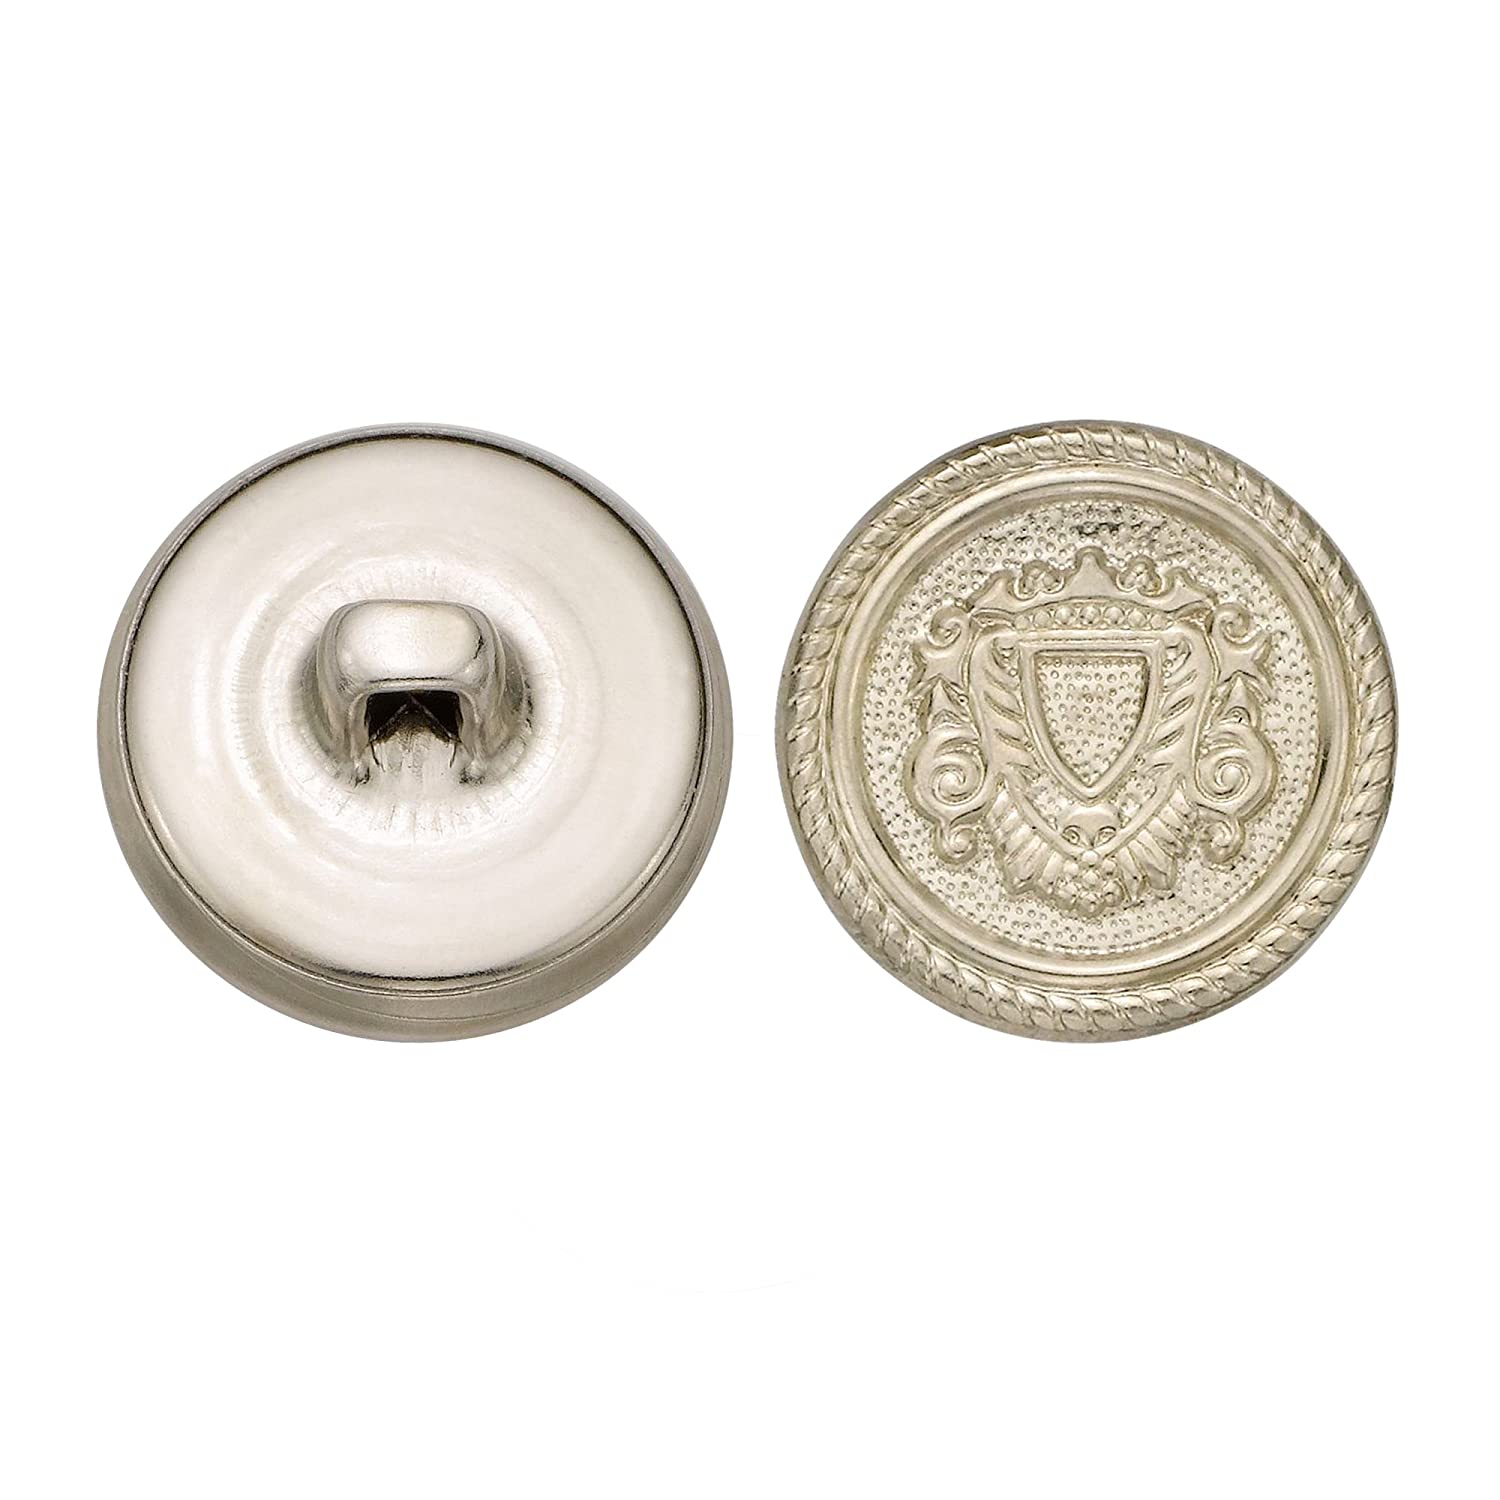 Size 30 Ligne 36-Pack Nickel C/&C Metal Products 5158 Rope Rim Crest Metal Button